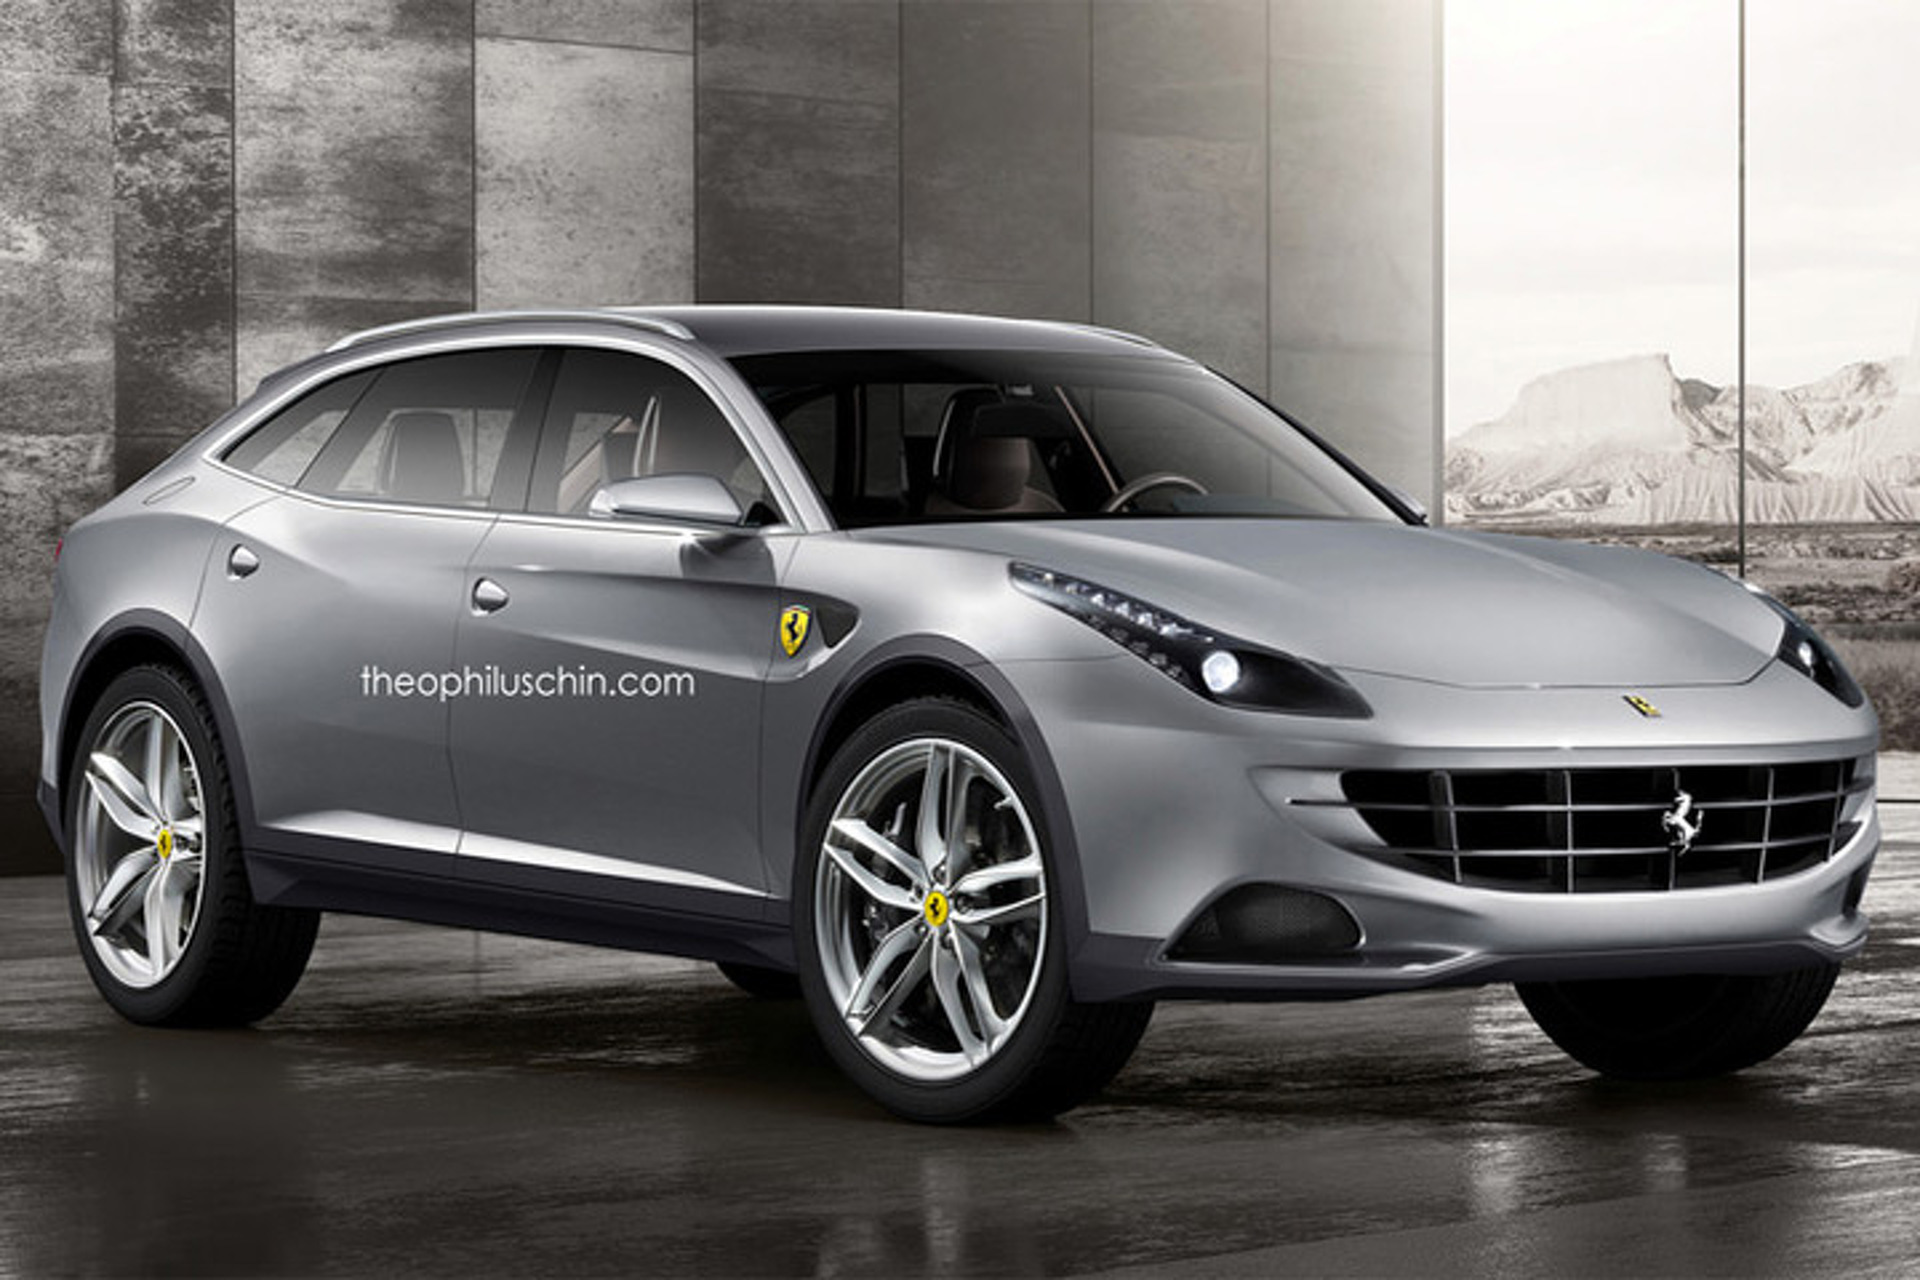 2016 Cadillac Crossover >> Ferrari SUV Production Confirmed, Still Several Years Away